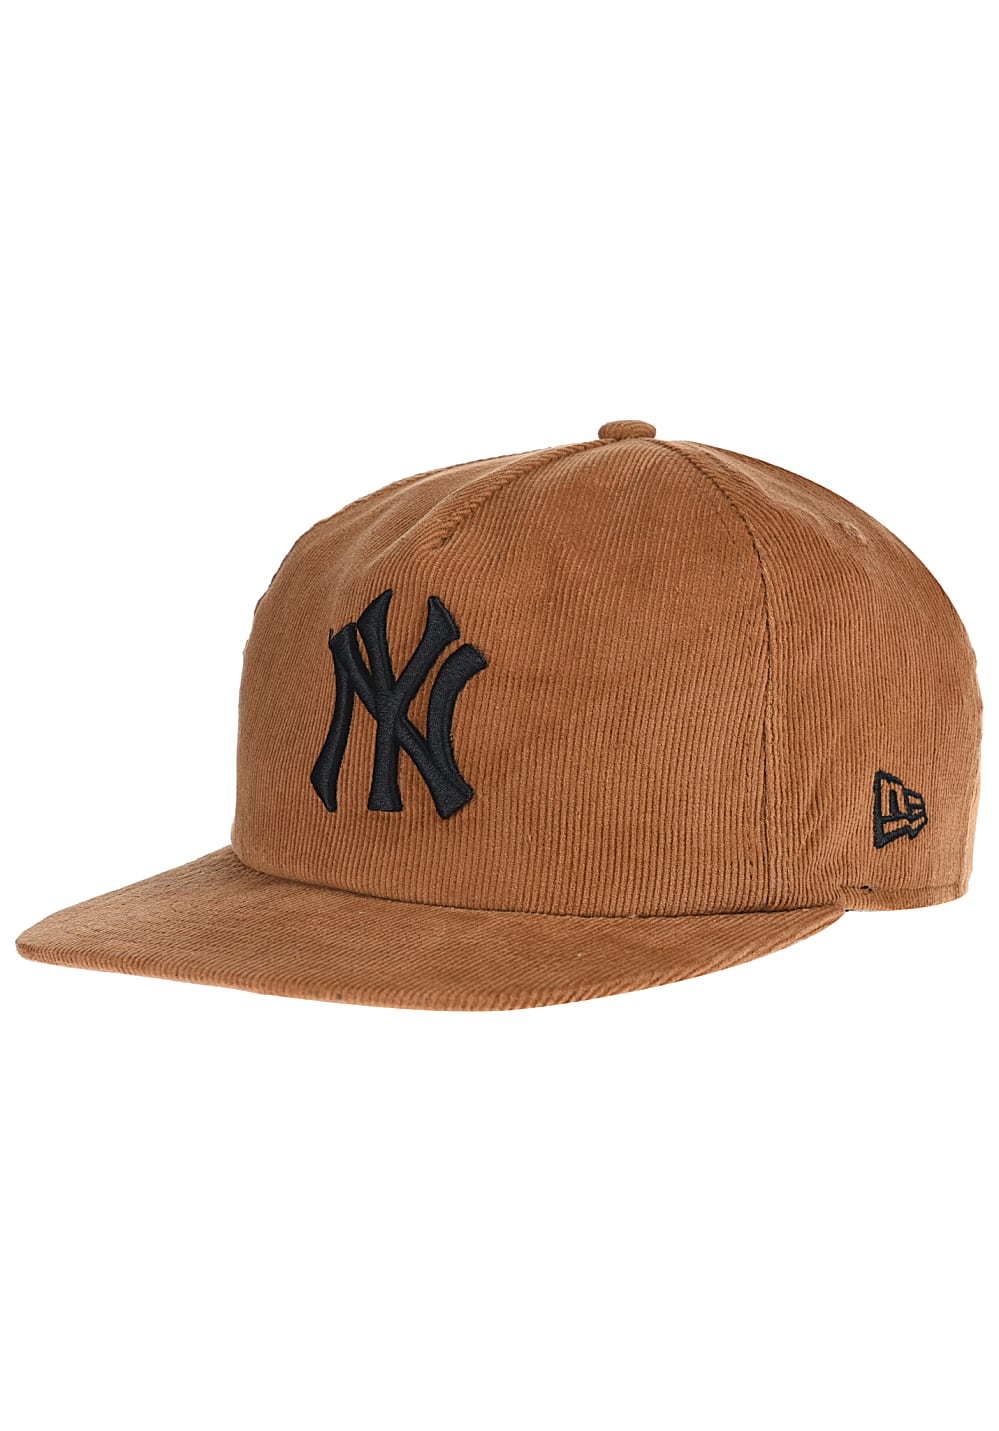 NEW Era MLB Coop Cord New York Yankees Co Snapback Cap - Braun - S/M